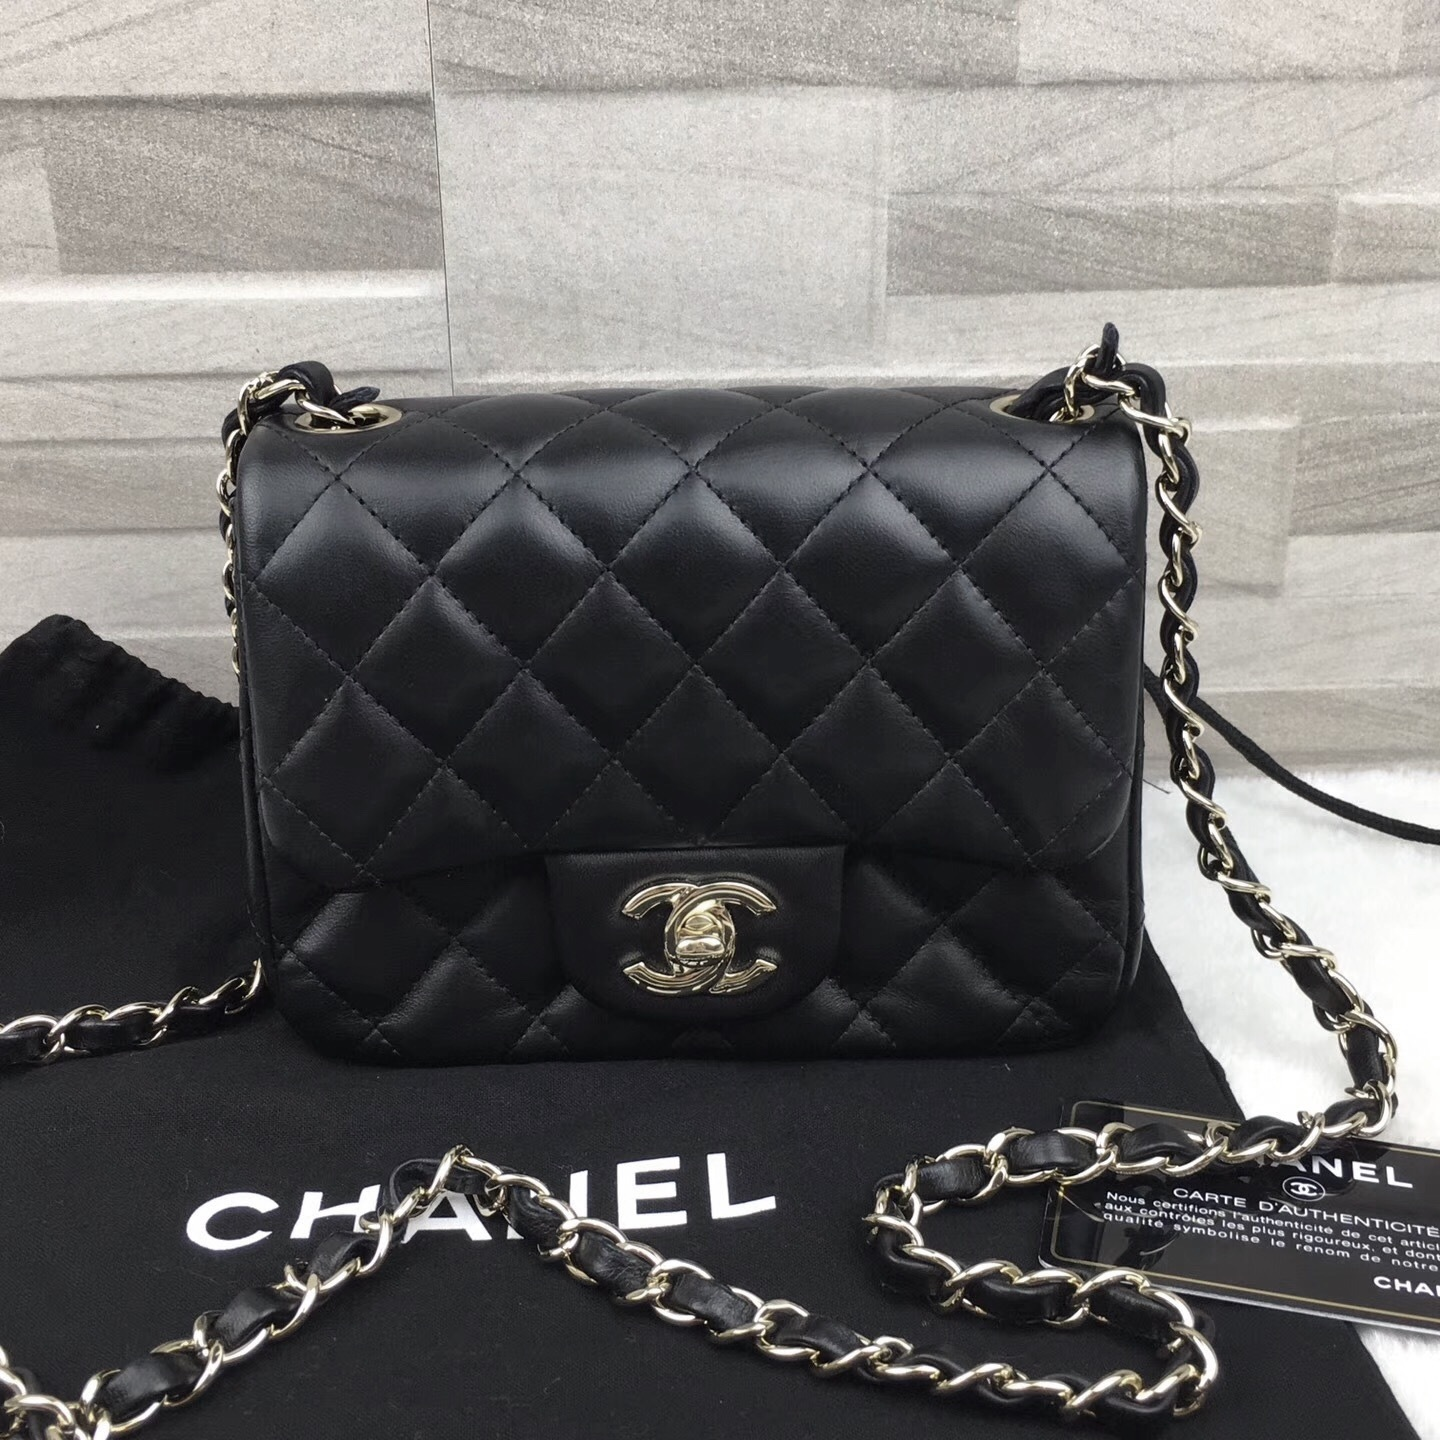 3dd9b3afb23b 3a4690bb 1554 40d1 96b3 83a72eb12609. 3a4690bb 1554 40d1 96b3 83a72eb12609.  AUTHENTIC CHANEL 2017 BLACK QUILTED LAMBSKIN SQUARE MIN FLAP BAG SILVER  HARDWARE